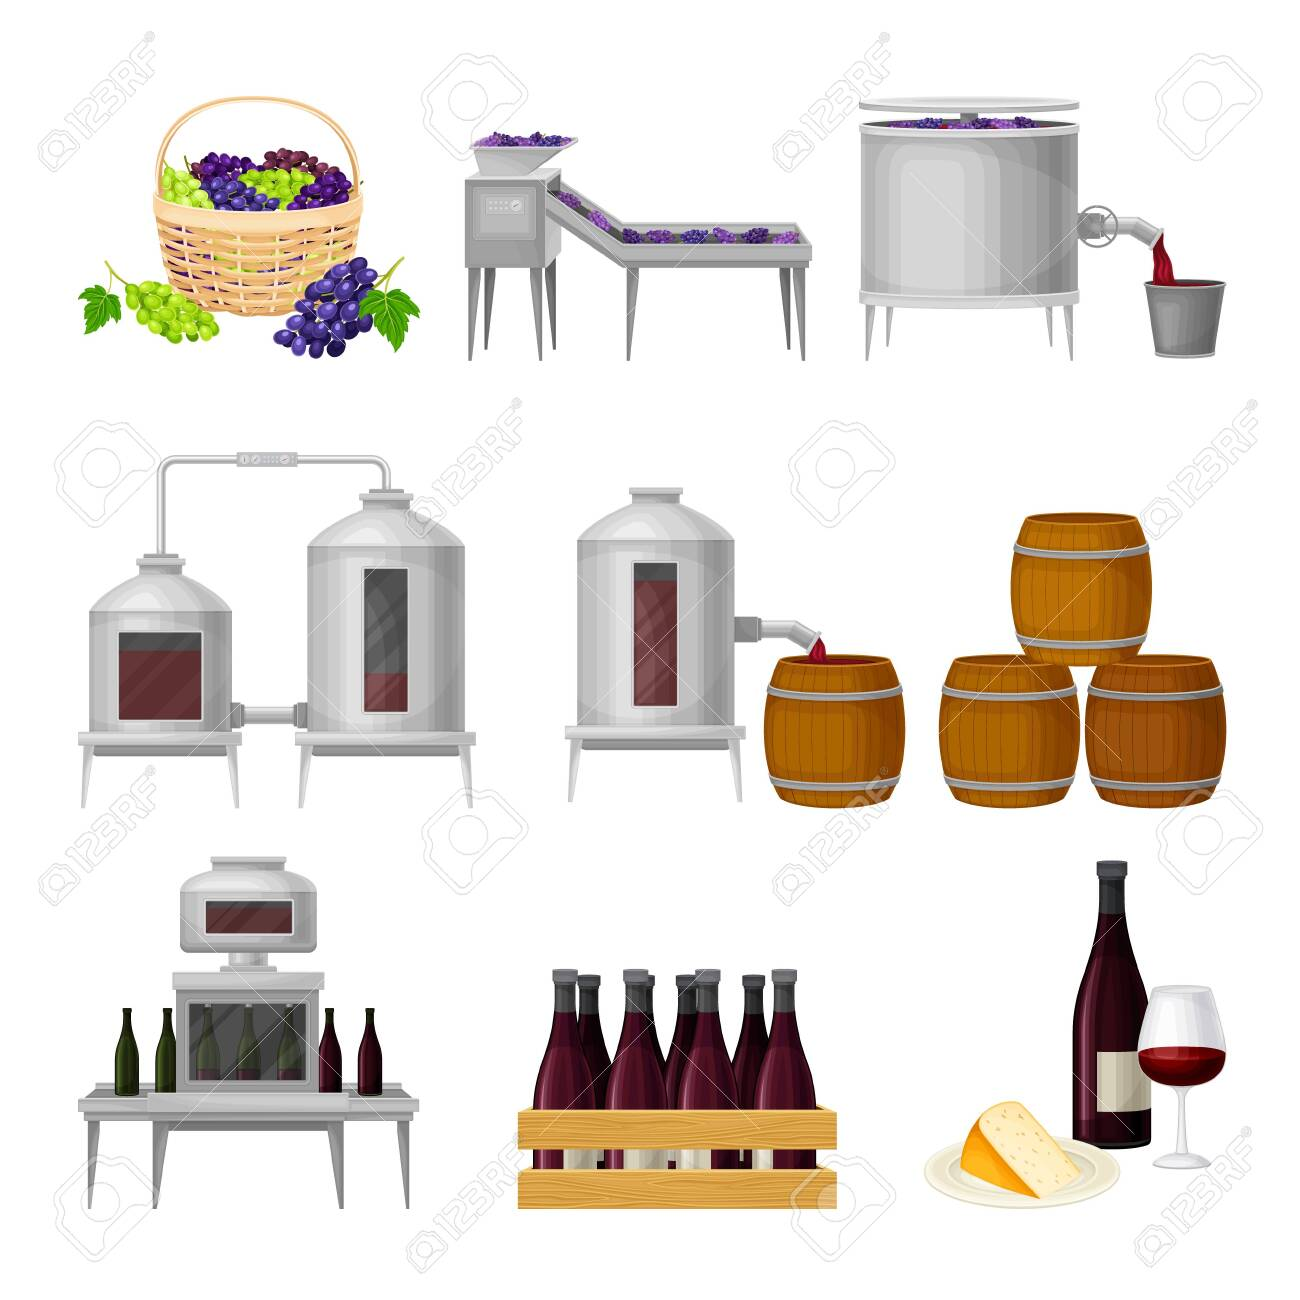 Grape Wine Production with Alcoholic Fermentation and Pouring in Bottles Process Vector Set - 153891001